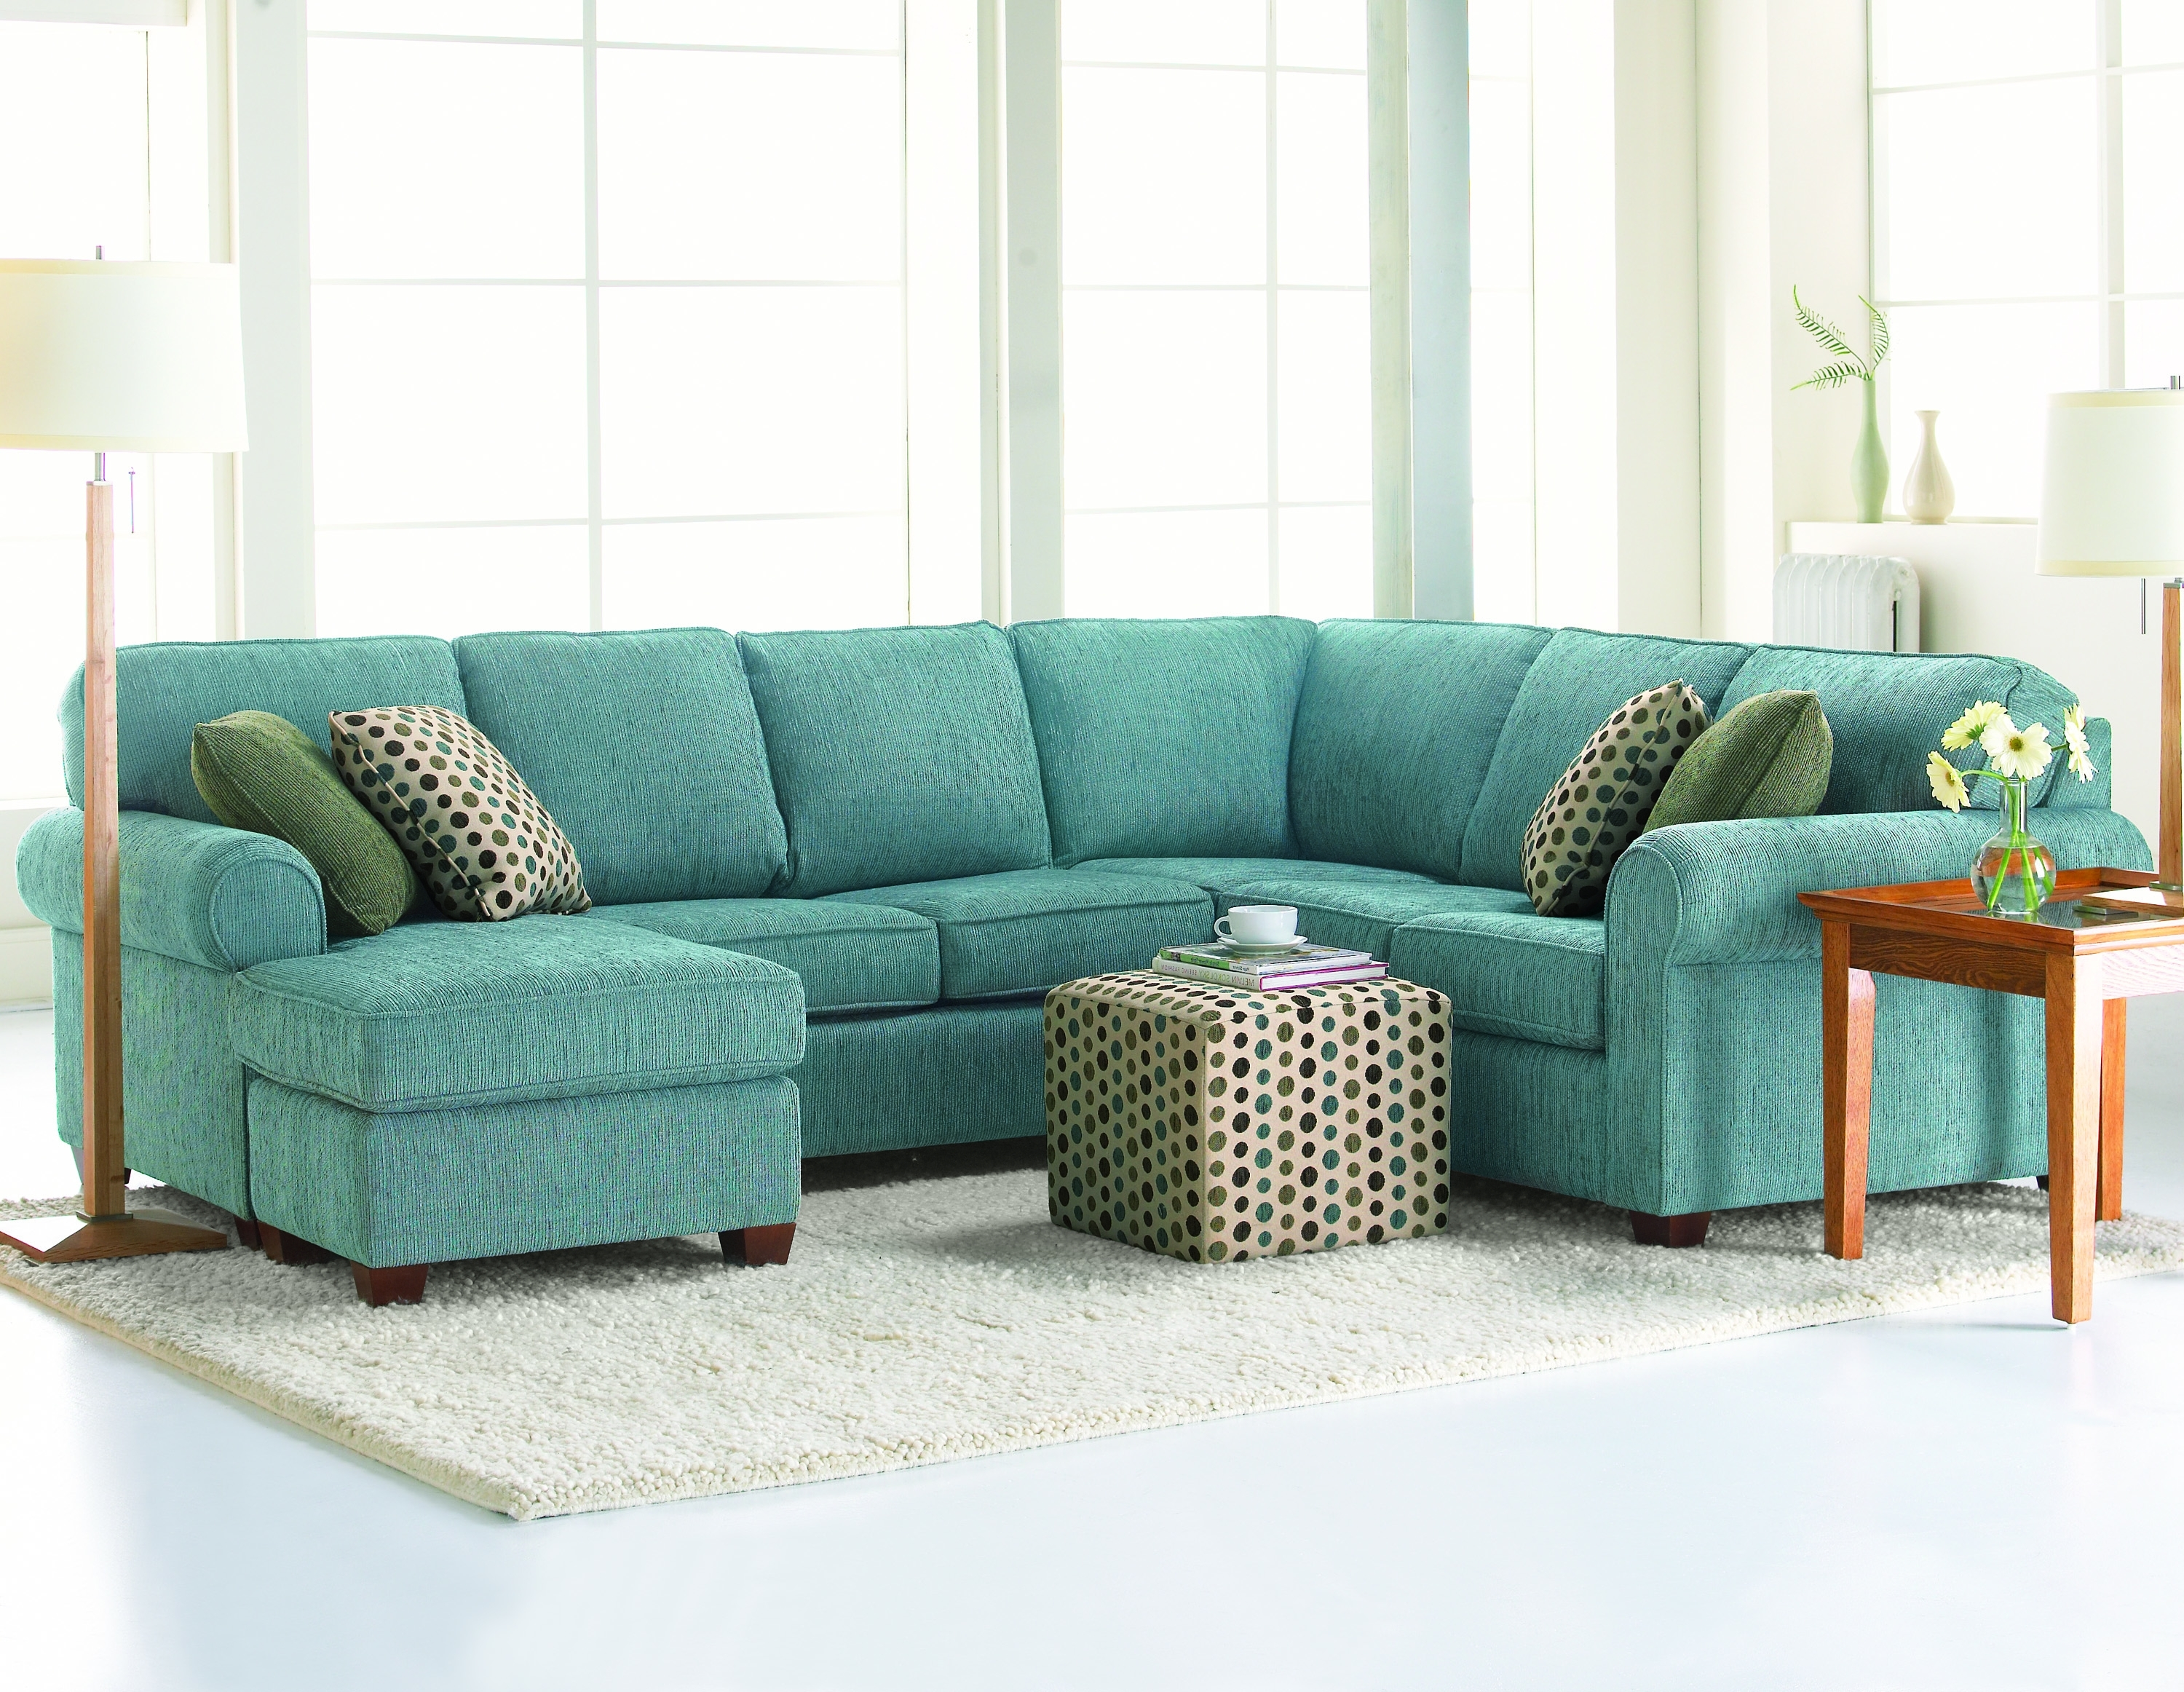 Preferred Ontario Canada Sectional Sofas For Sectional Sofas – Thompson Brothers Furniture (View 7 of 20)